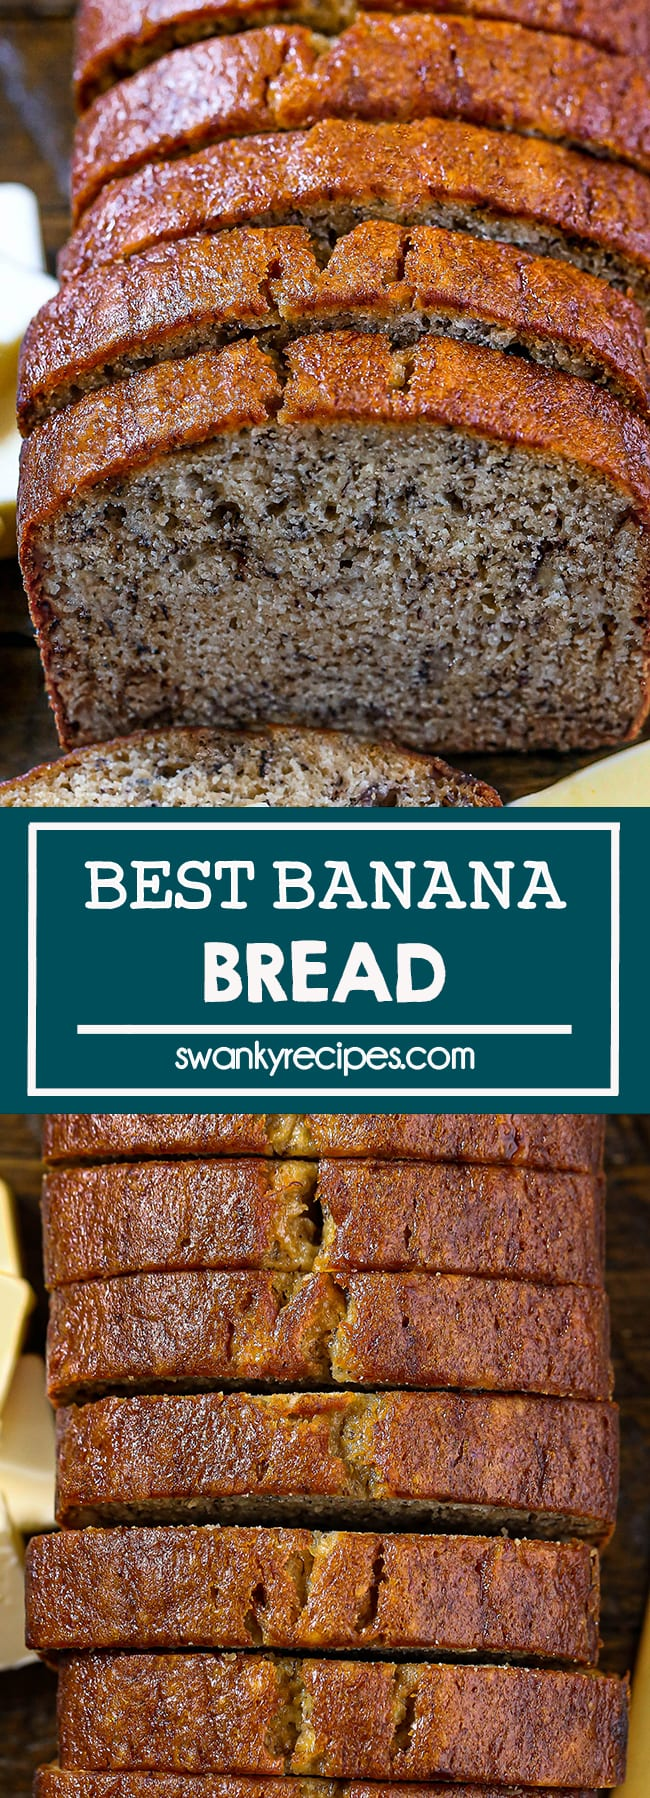 Best Banana Bread - Banana bread slices on a wooden board with a pat of butter in the right corner. Text in center in blue box reads best banana bread. Second image is an overhead view of banana bread slices.